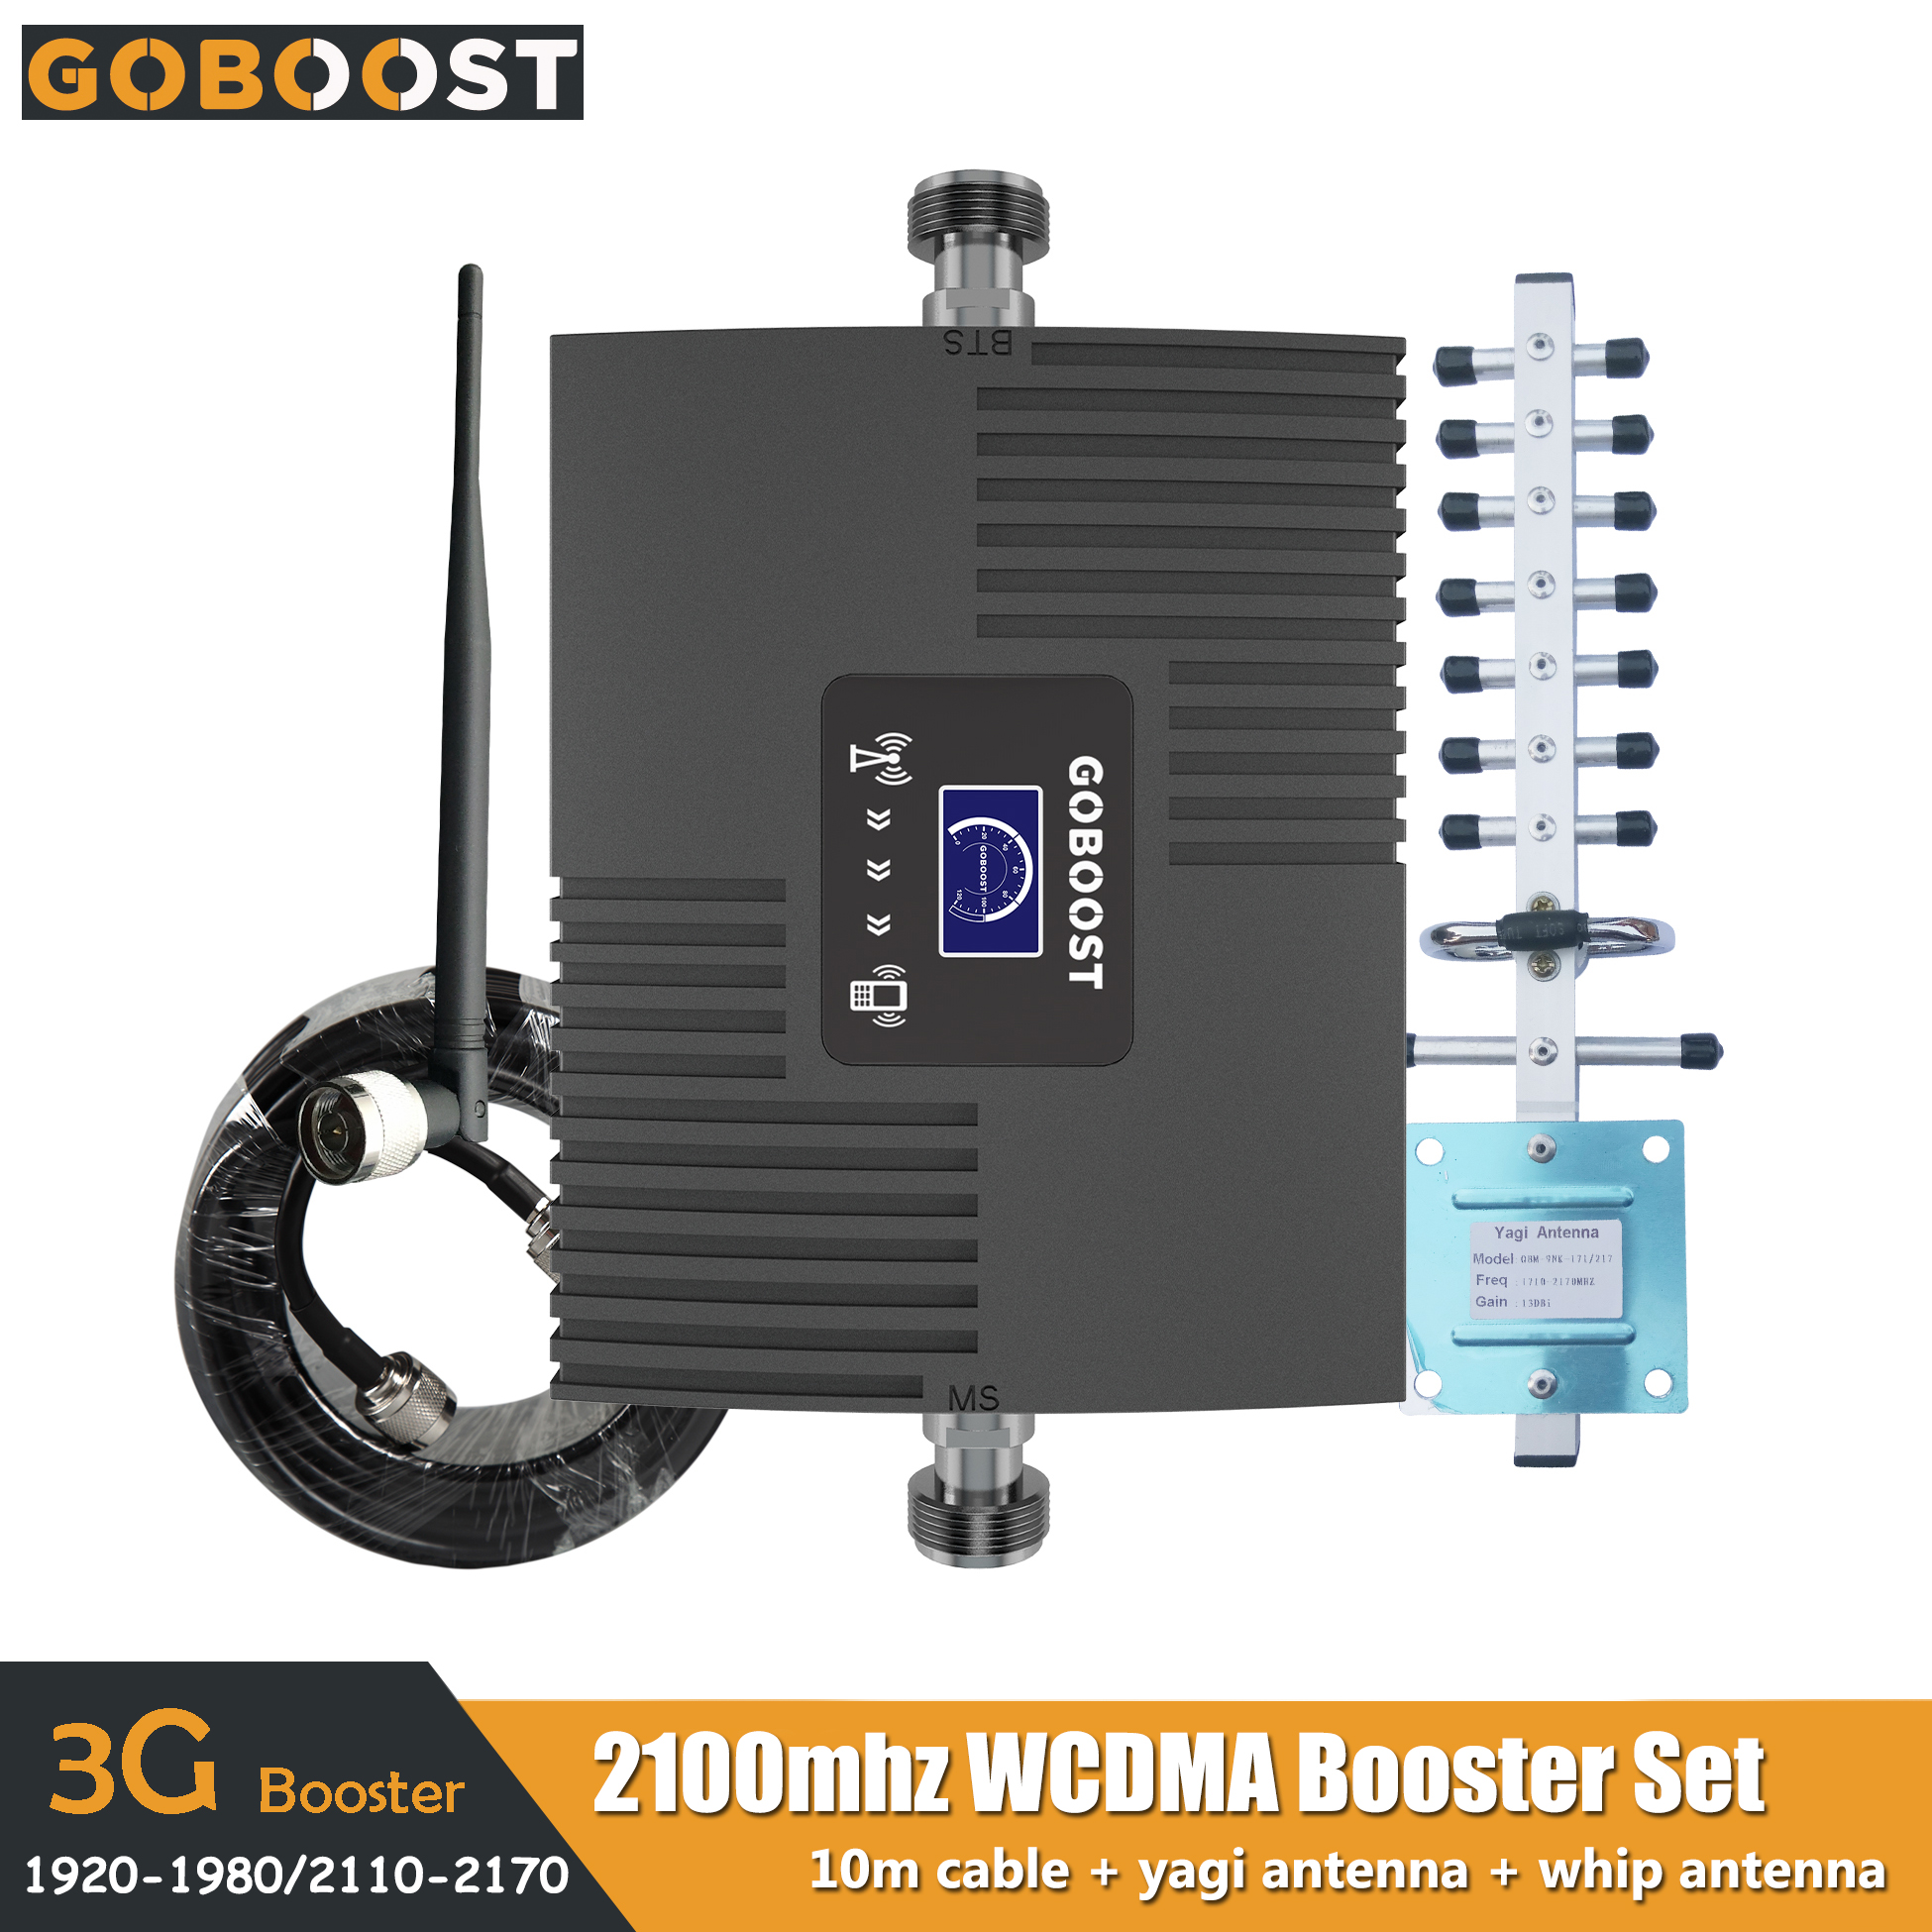 GOBOOST 3G Signal Booster WCDMA 2100mhz Band 1 UMTS Cellular Mobile Phone Amplifier Mini LCD Display Repeater Amplifier Network